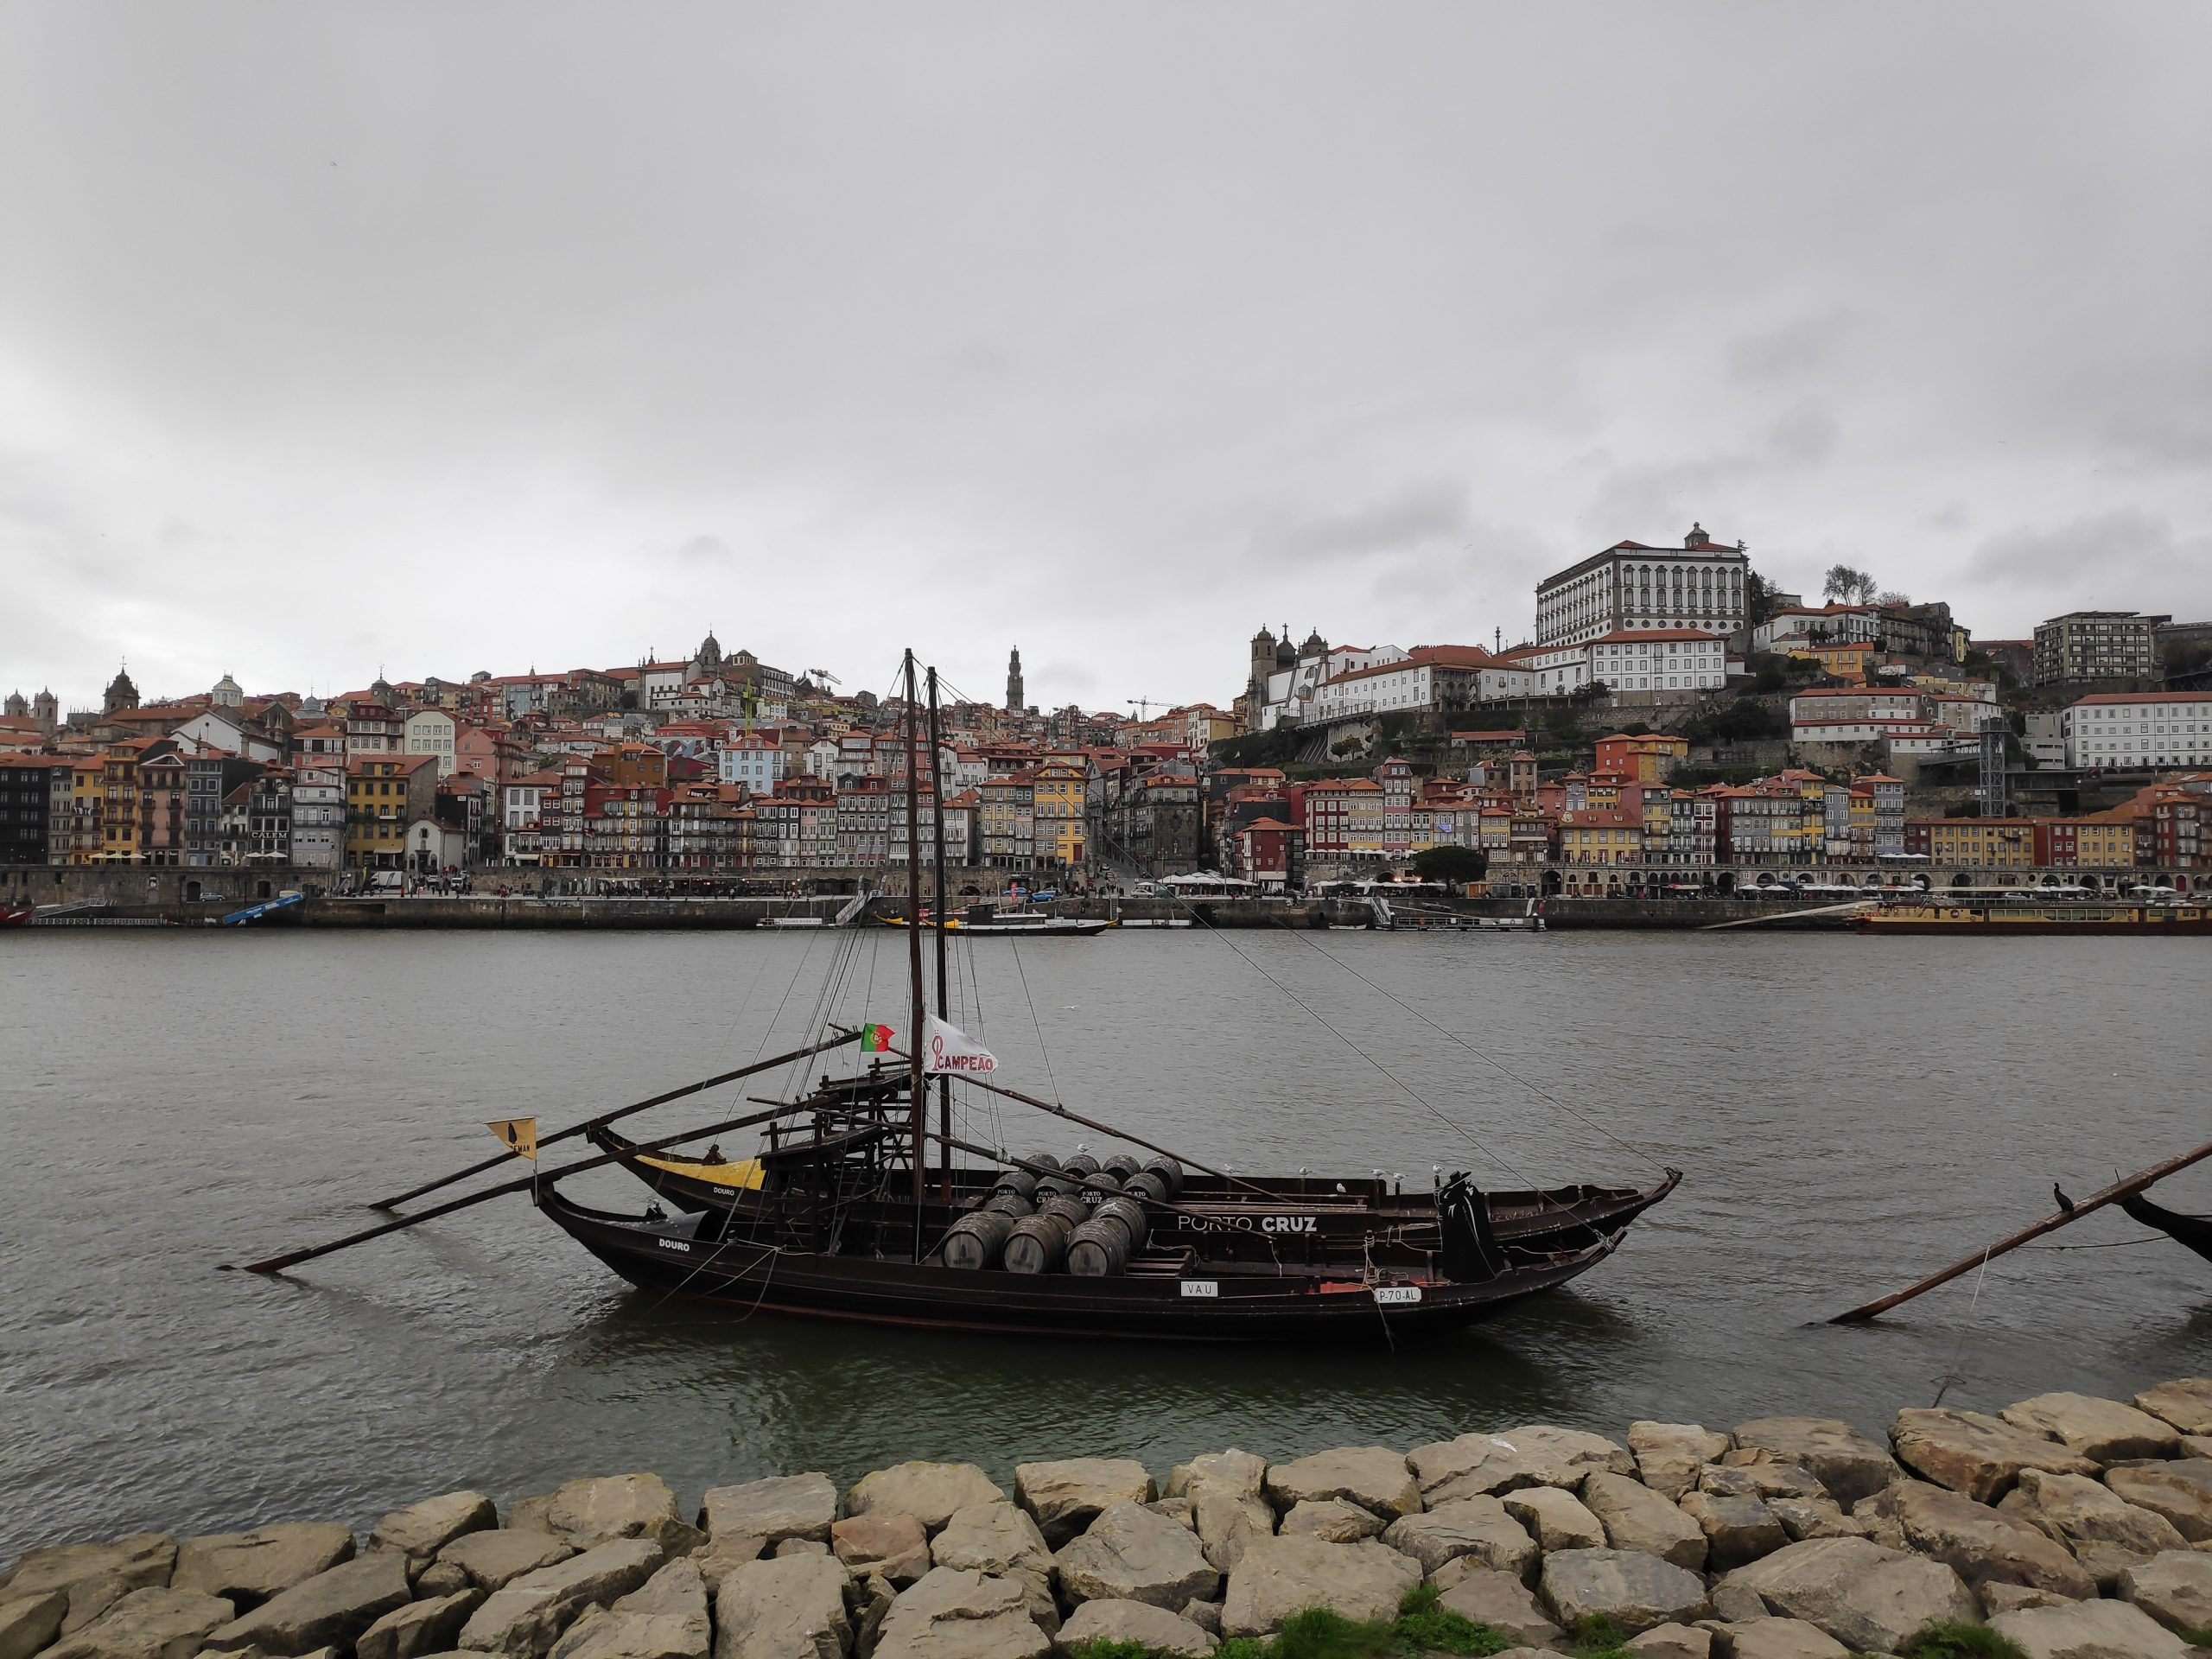 One of the more famous cellars. I think they bring either grapes or something on the river to the cellar, which is located in Porto.